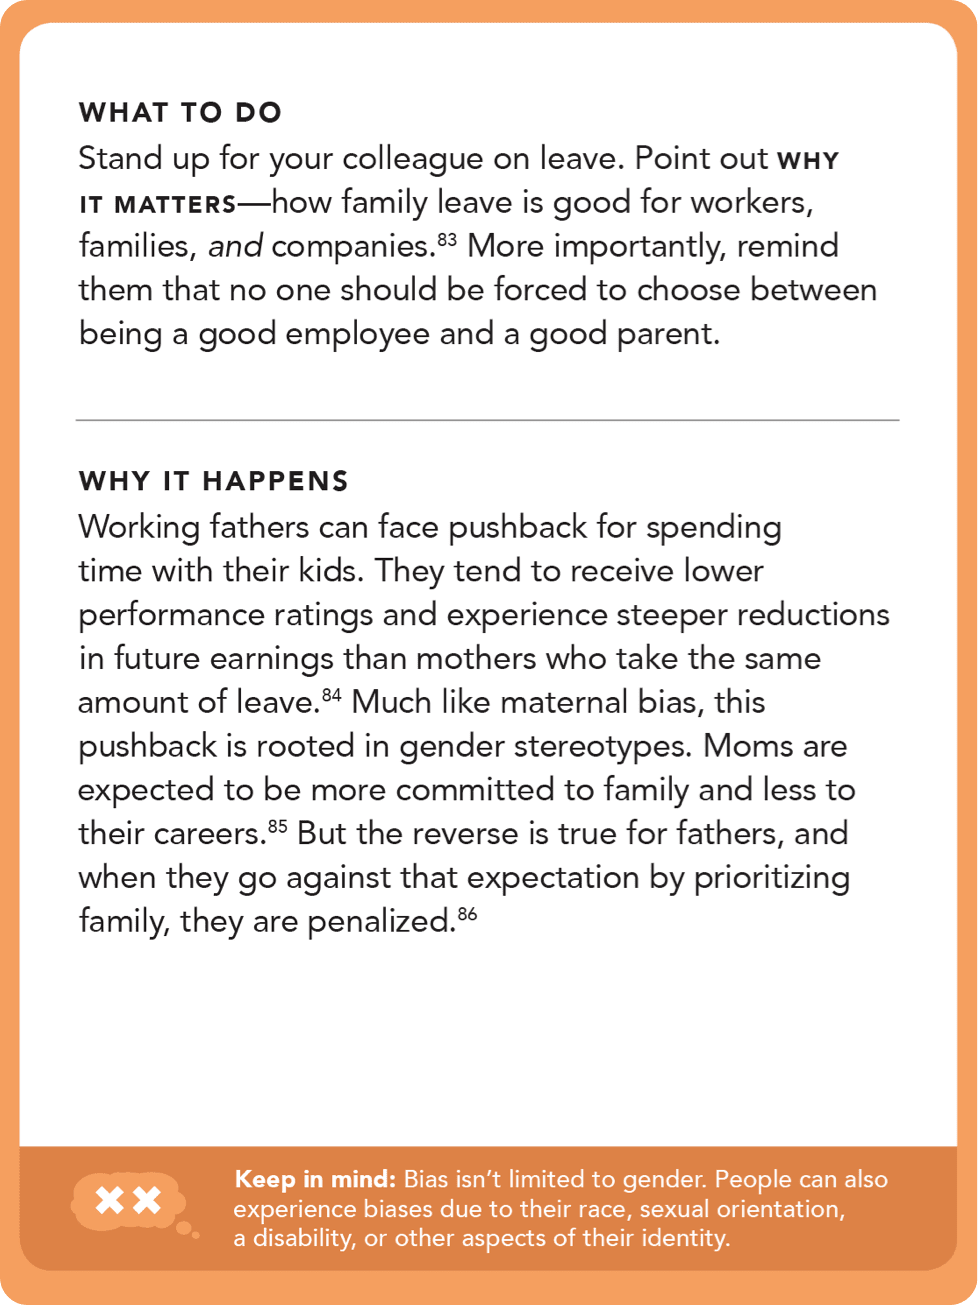 Back of card: What to do - stand up for your colleague on leave. Point out why it matters - how family leave is good for workers, families, and companies.